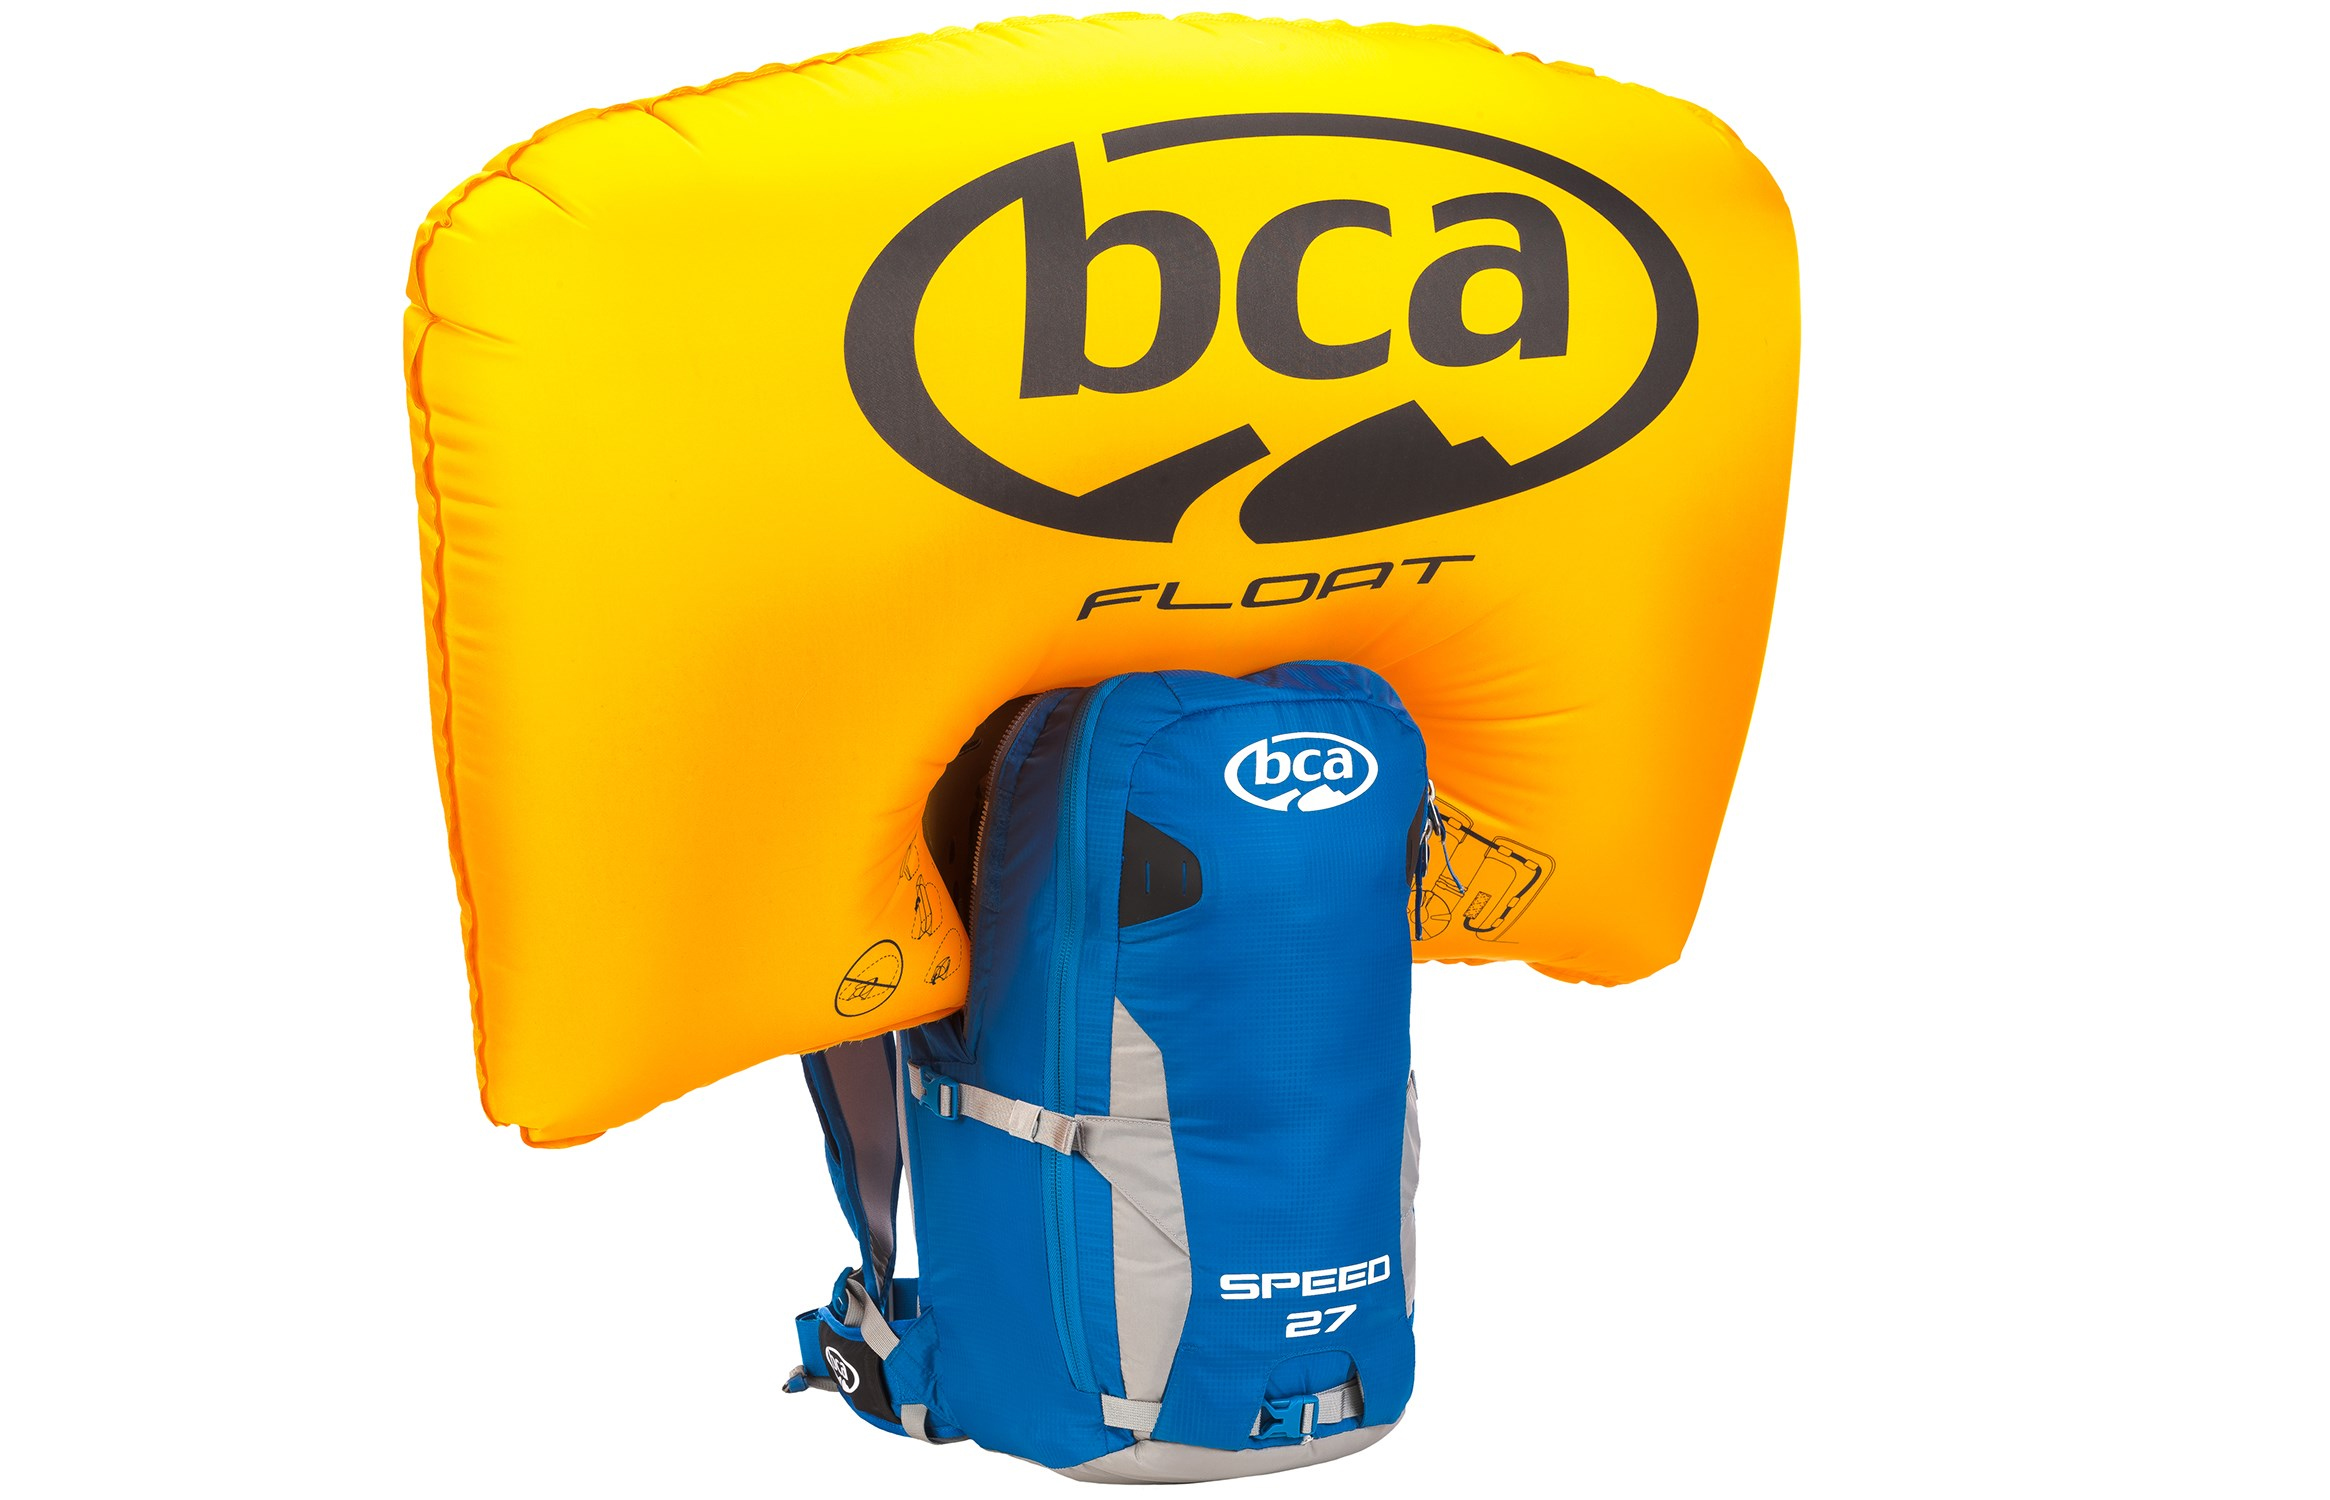 BCA Speed 27 airbag